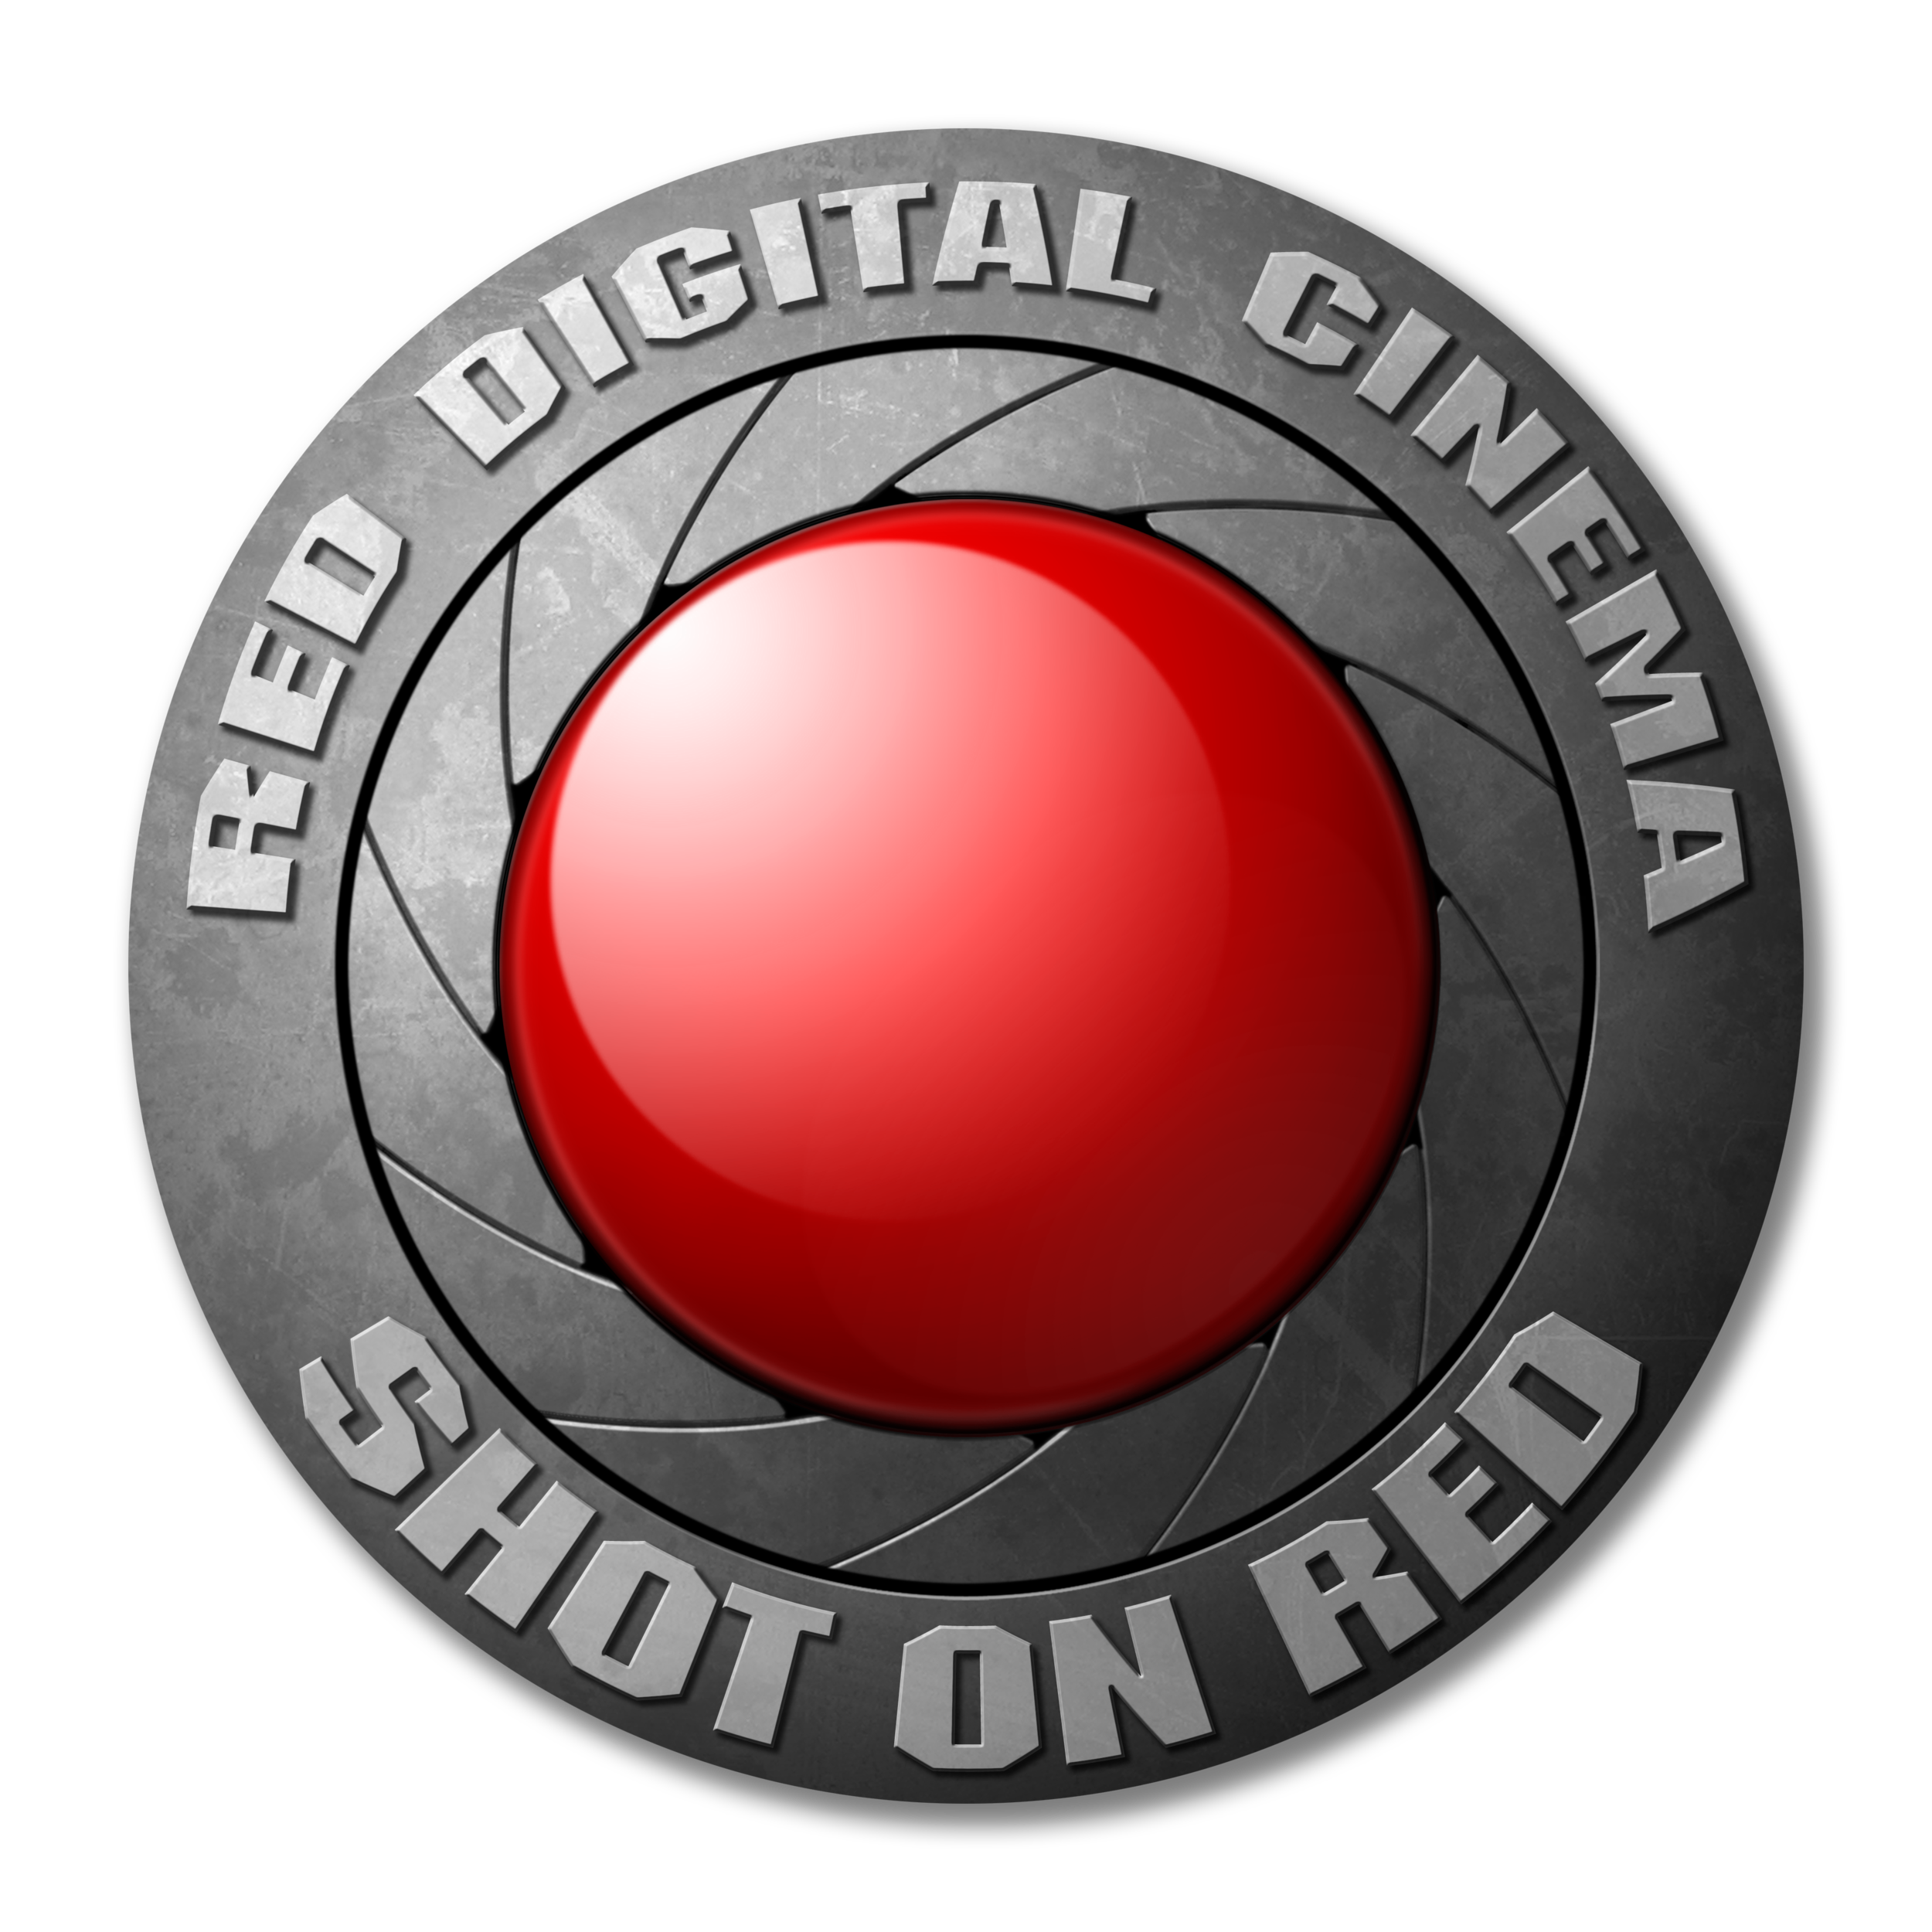 Shoot on Red